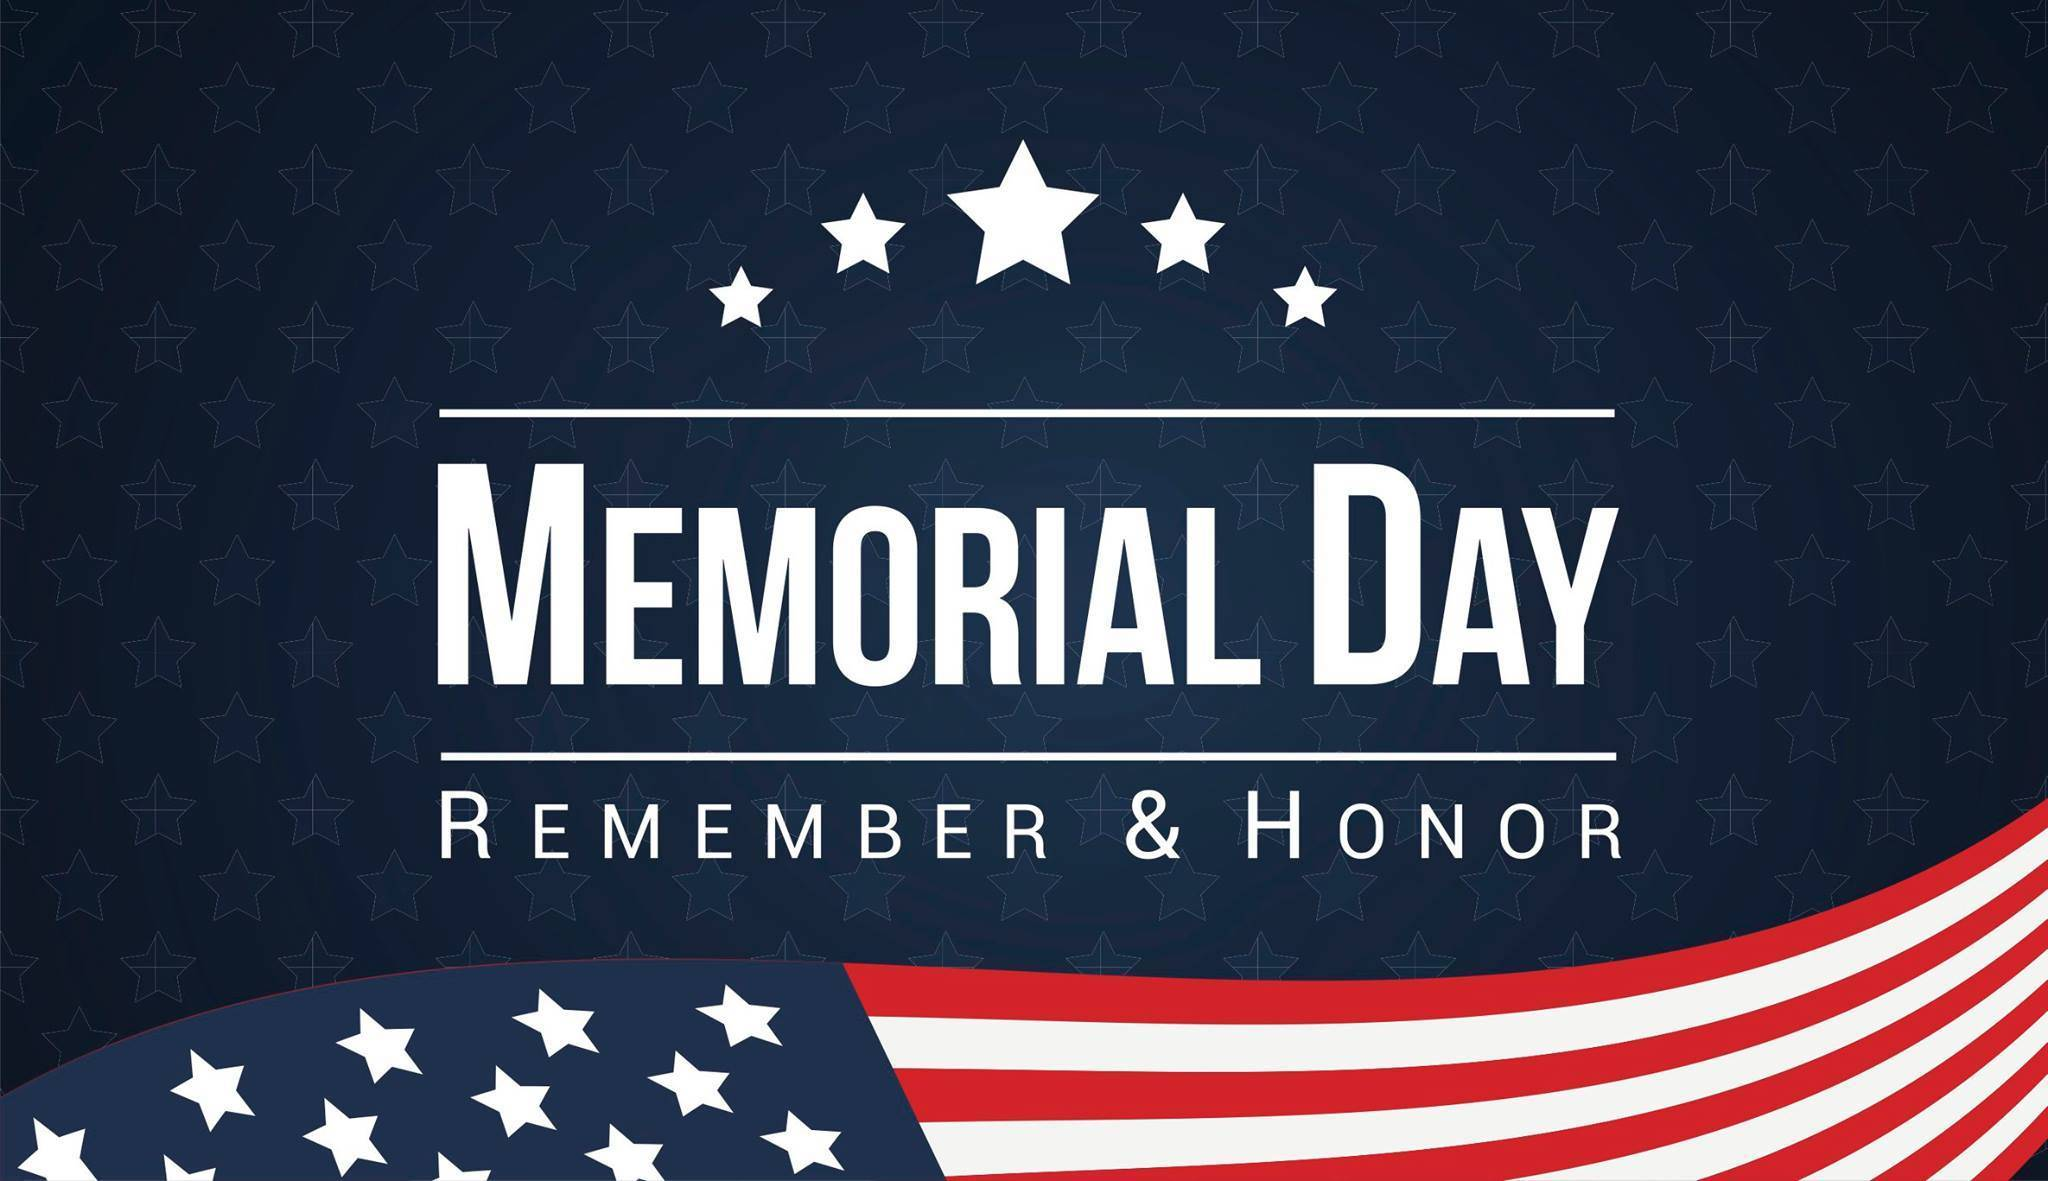 Memorial Day 2019 US Flag Images HD Wallpapers Photos CalendarBuzz 2048x1181